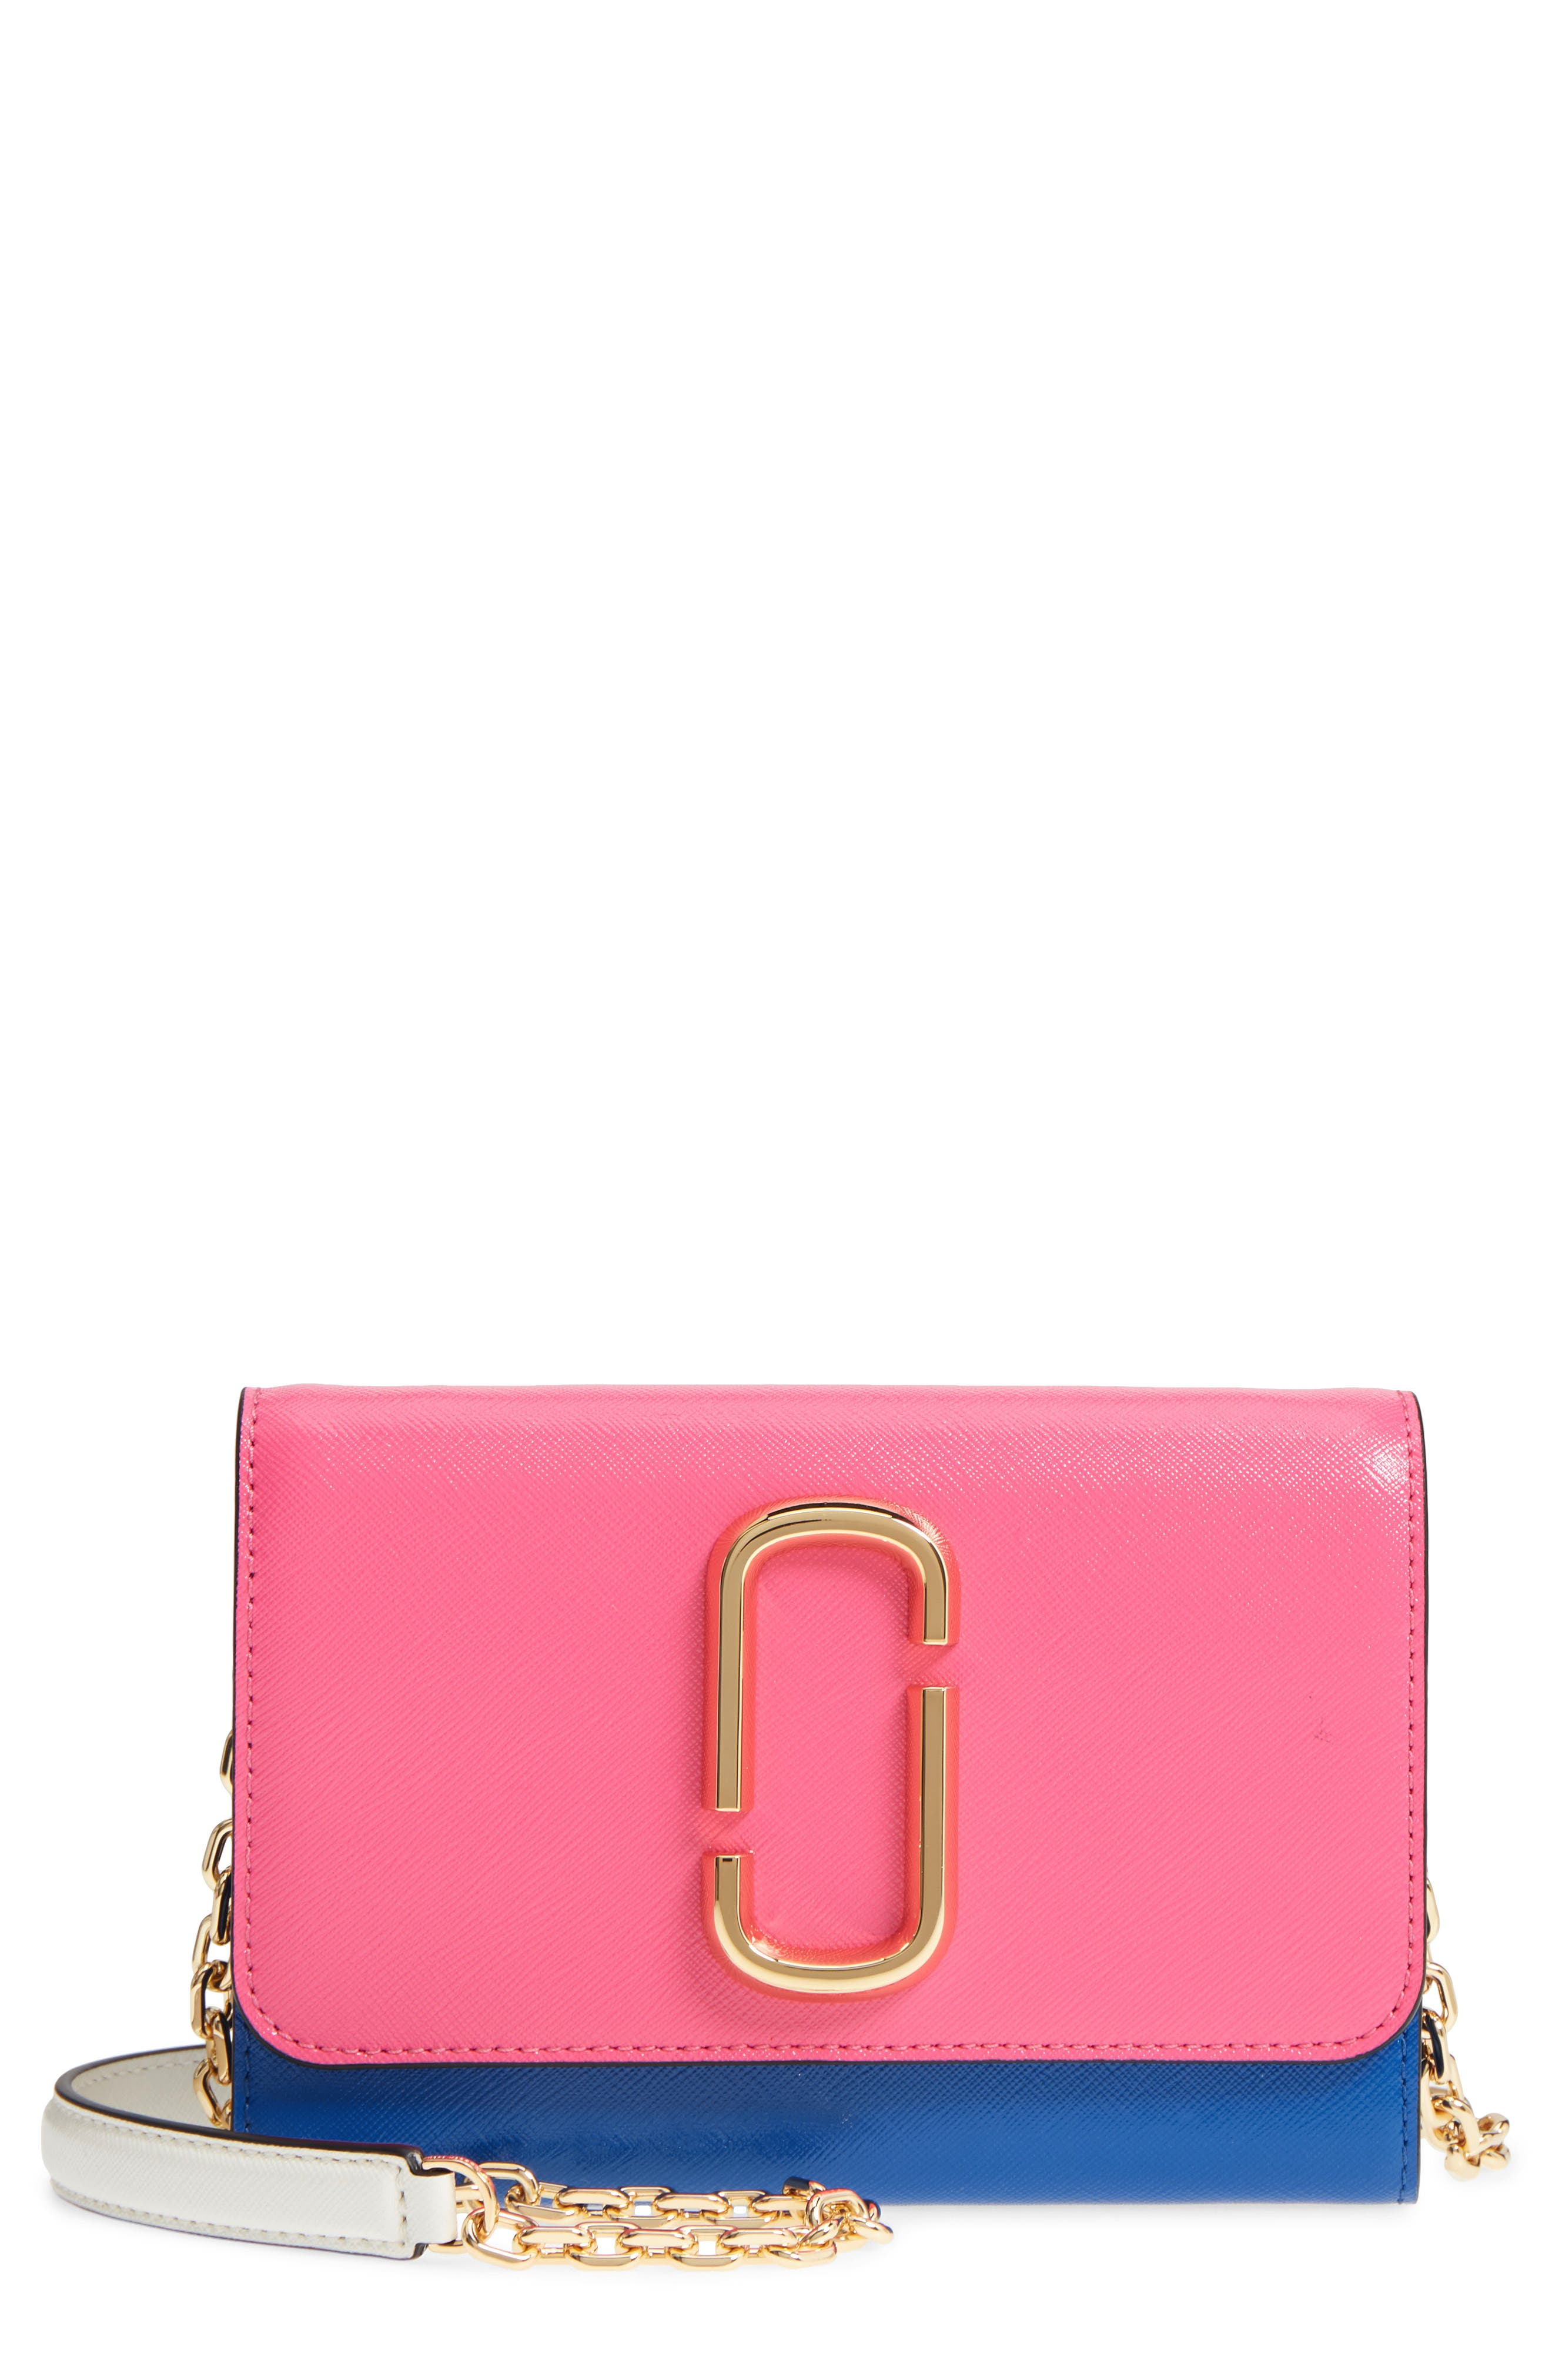 MARC JACOBS Snapshot Leather Wallet on a Chain